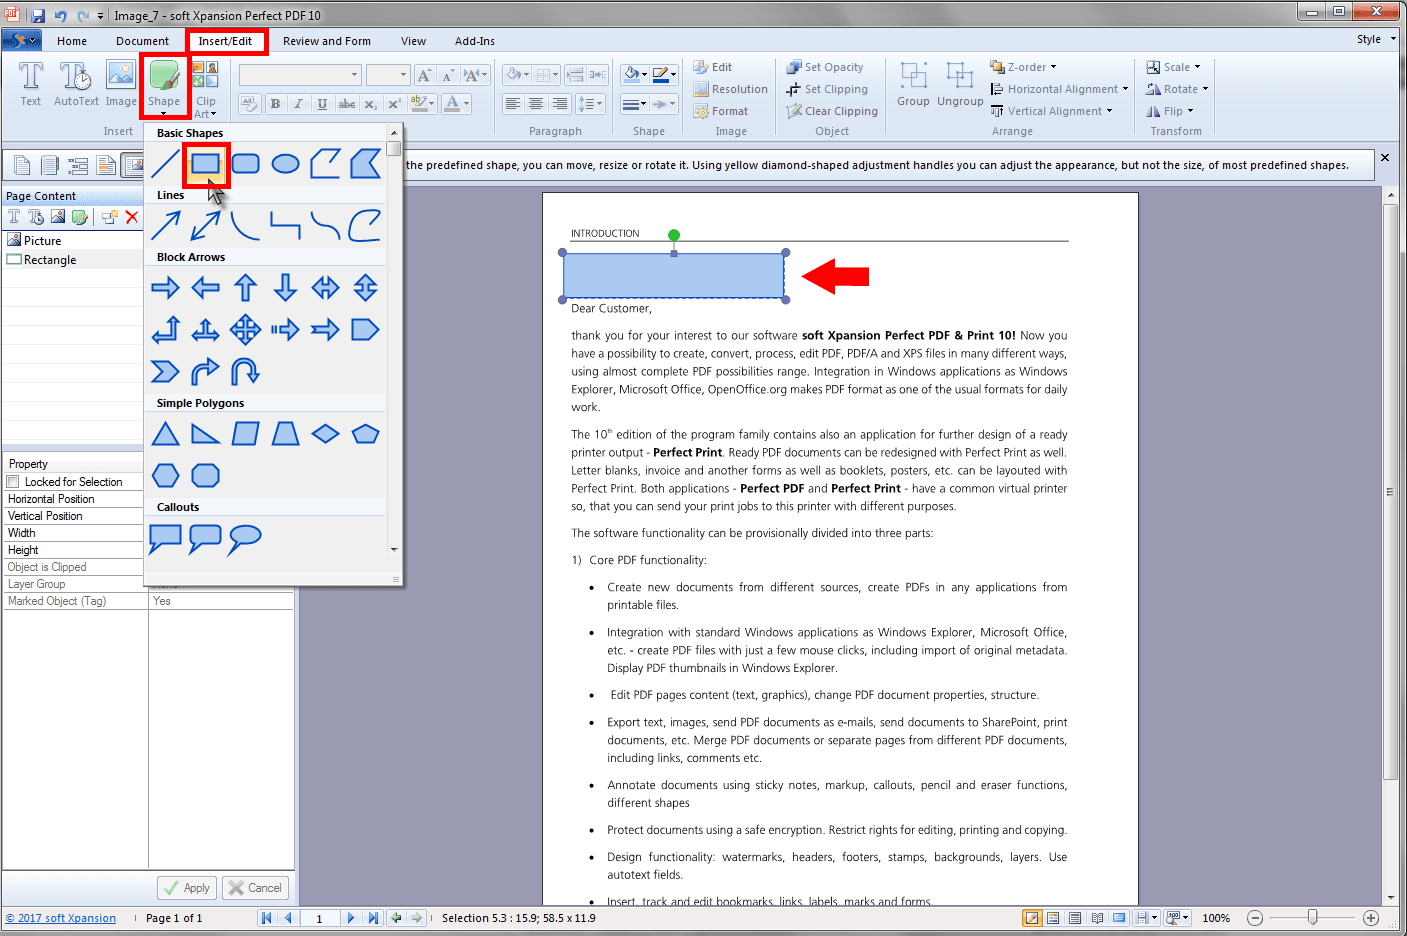 How to edit existing PDF documents